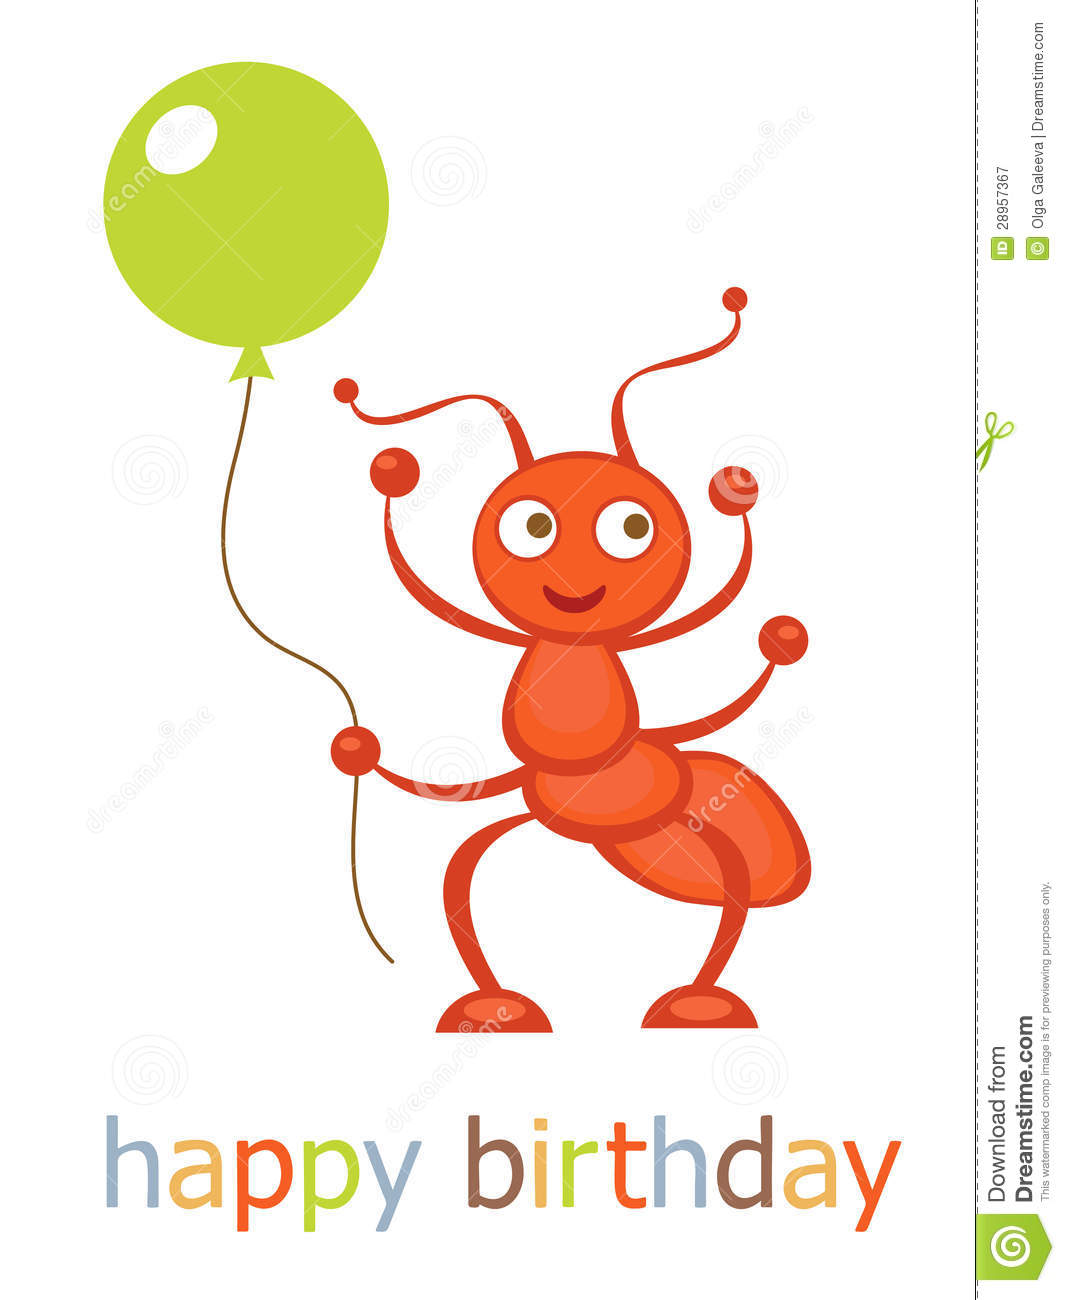 Happy birthday card with ant holding balloon.